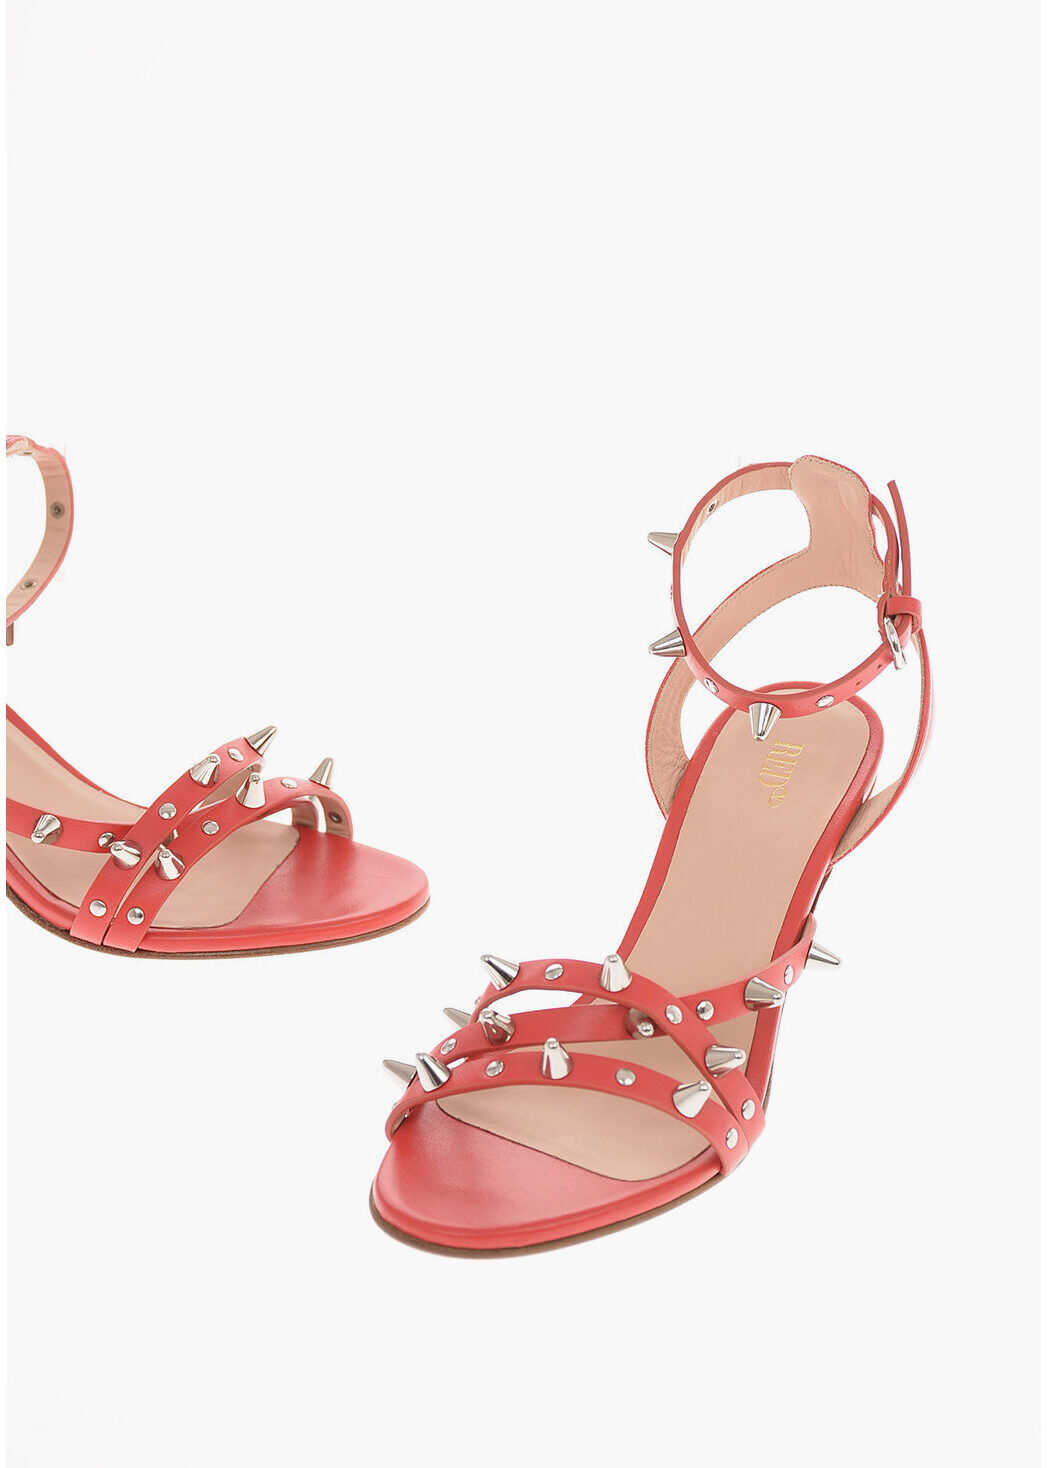 RED VALENTINO Leather Sandals with Studs 6.5 Cm RED imagine b-mall.ro